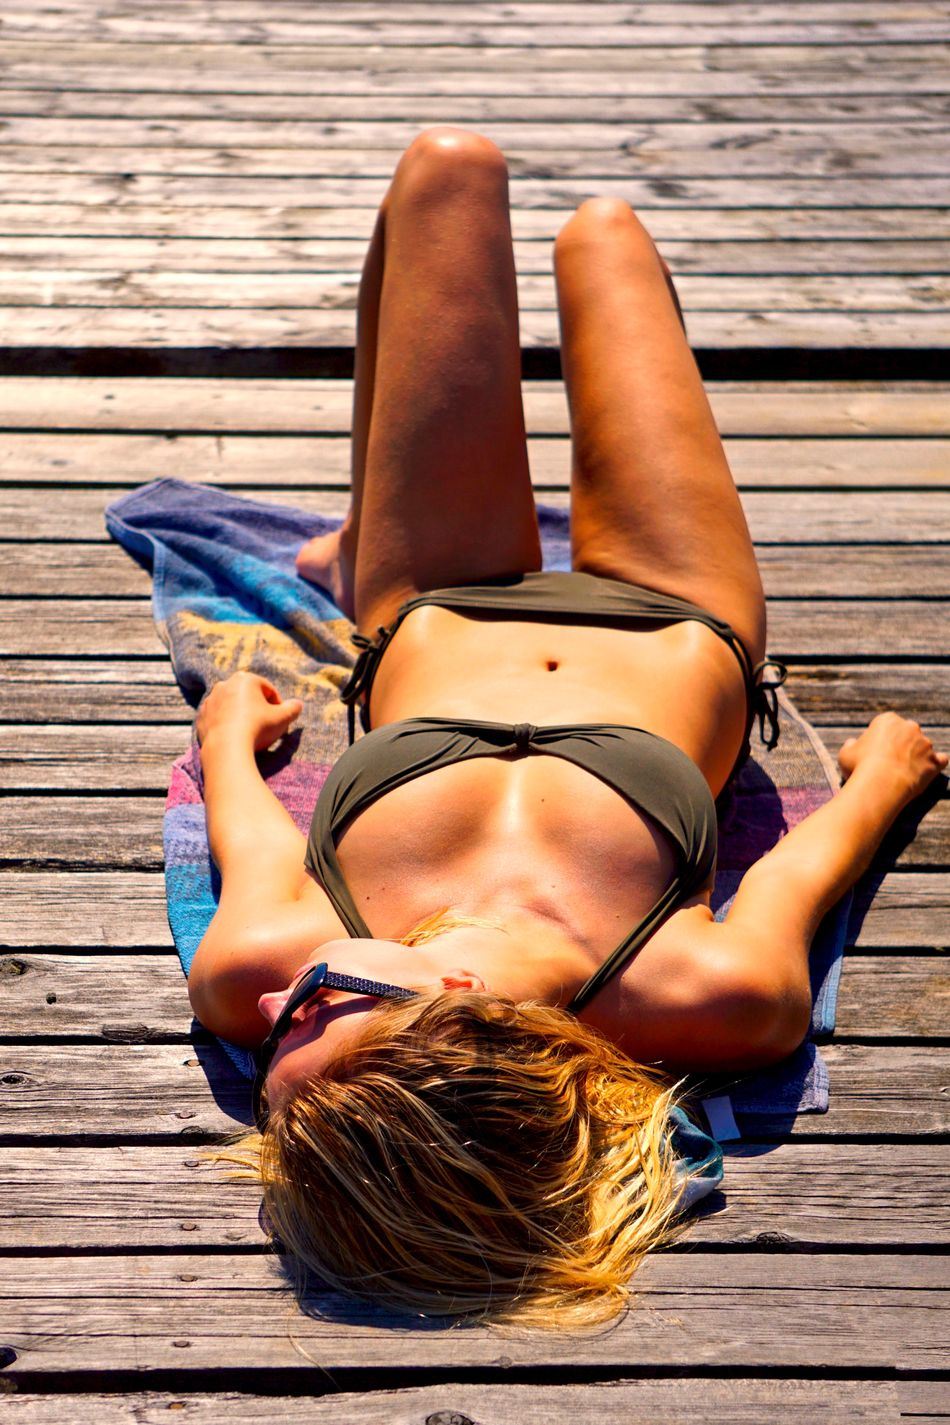 Young woman lying on dock on a towel sunbathing Adult Bikini Cottage Life Day Dock Full Length High Angle View Leisure Activity Lifestyles Lying Down Lying On Back One Person Outdoors Pier Real People Relaxation Sunbathing Suntanning Towel Vacations Water Wood - Material Young Adult Young Woman